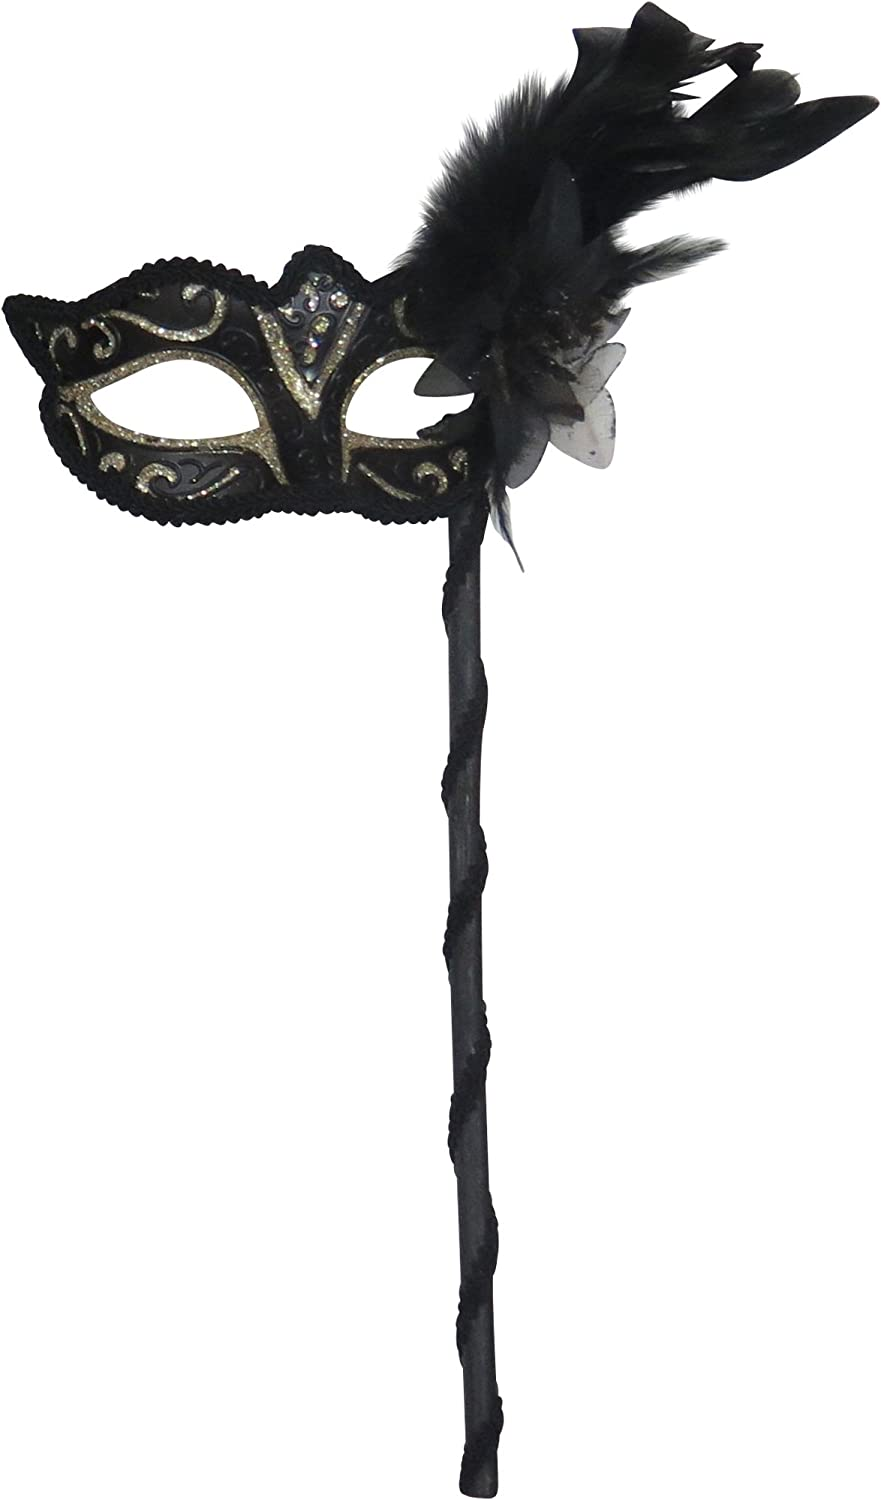 GLITTERING BLACK AND GOLD VENETIAN MASQUERADE PARTY  MASK ON A  HAND STICK